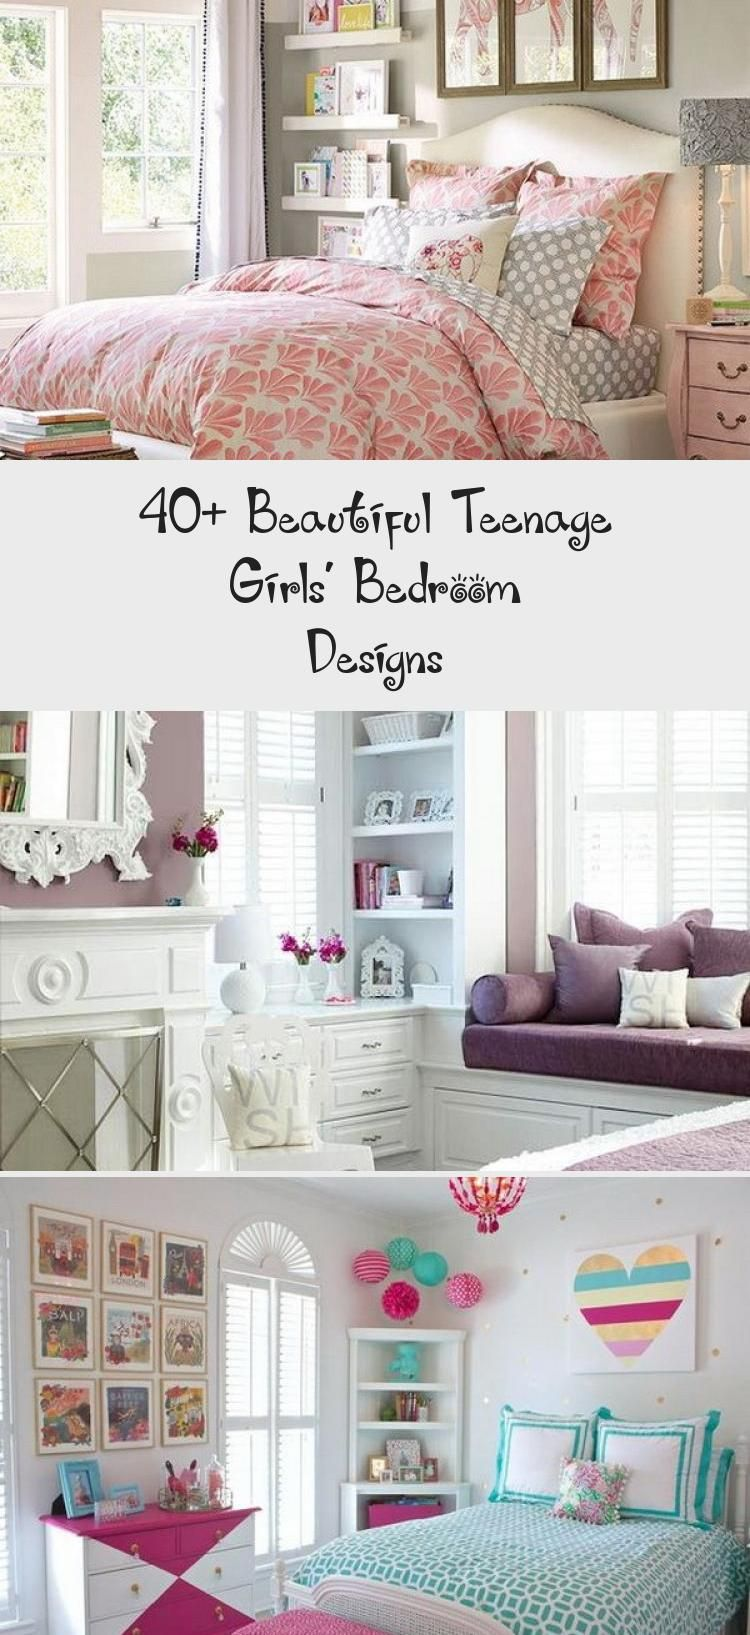 40+ Beautiful Teenage Girls' Bedroom Designs - Decor #teenagegirlbedrooms